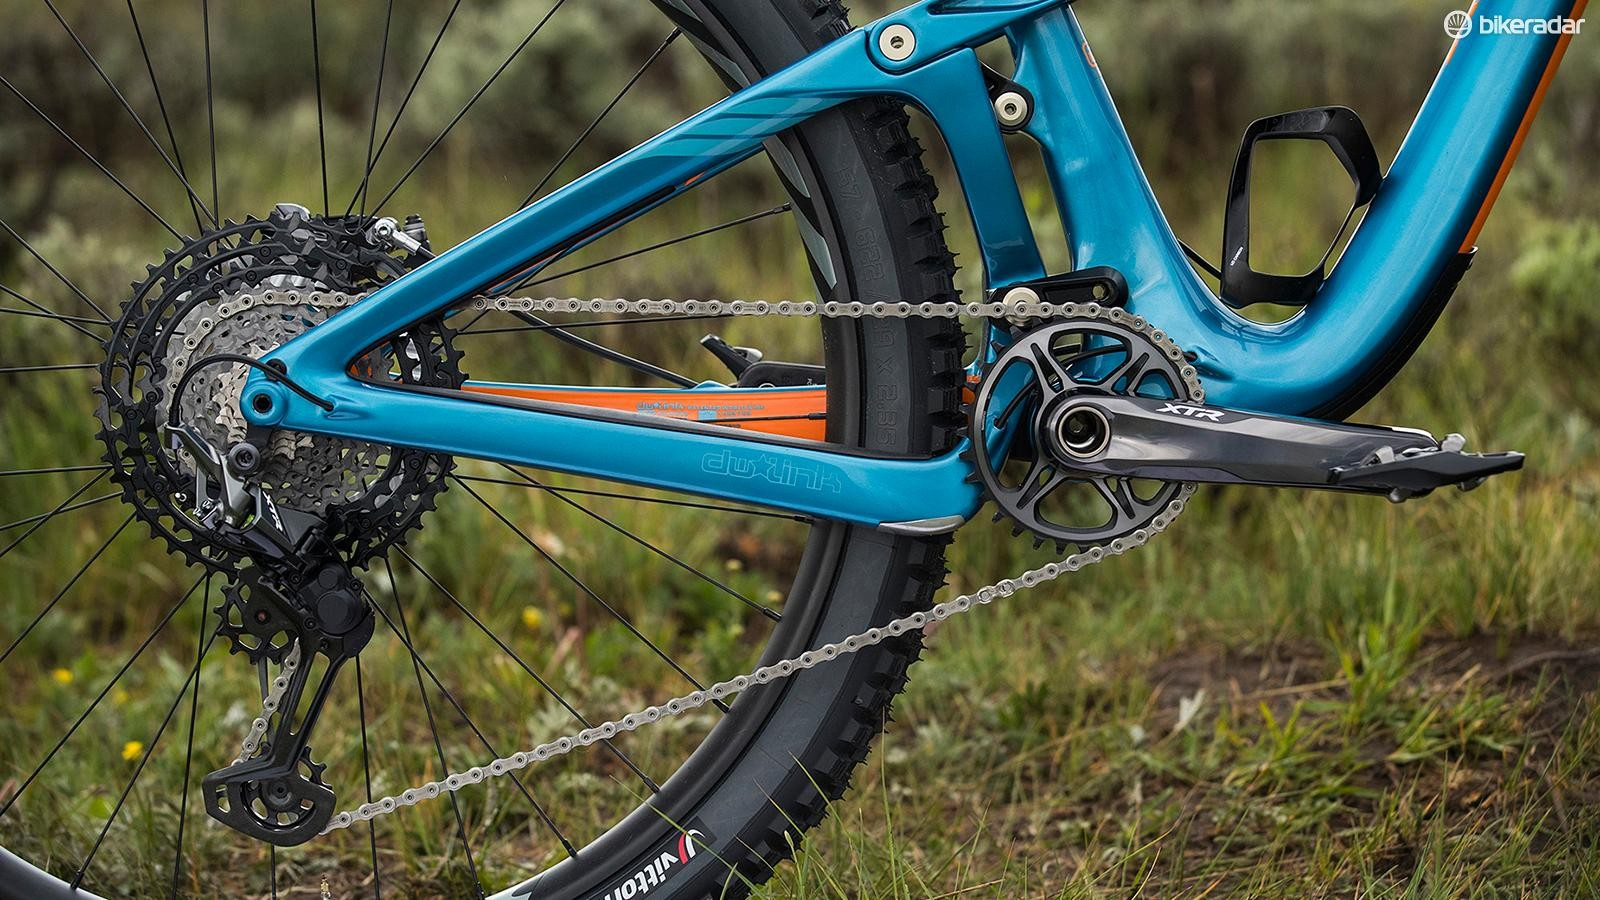 XTR M9100 is the Shimano's next-generation 12-speed mountain bike groupset